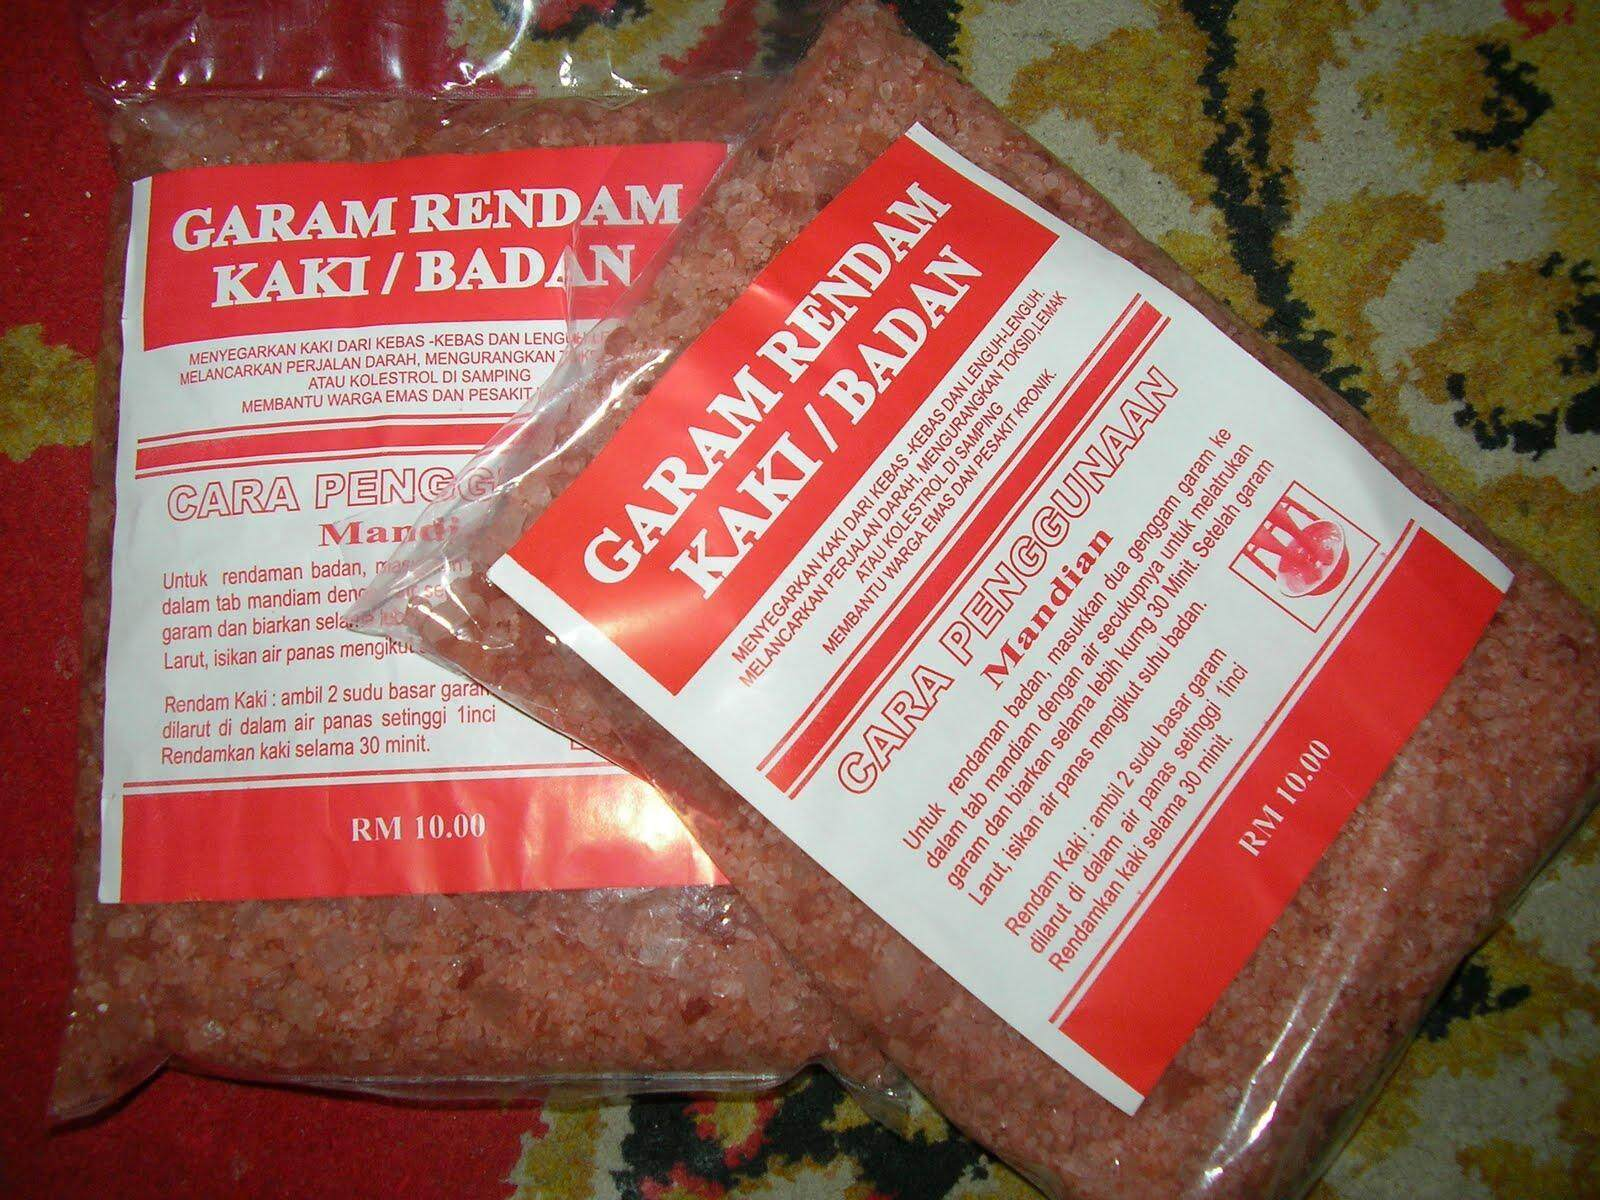 12.12 Special Price Promotion Garam Bukit Himalaya 2000GM Rendam Kaki & Badan Body And Foot Soak Salt